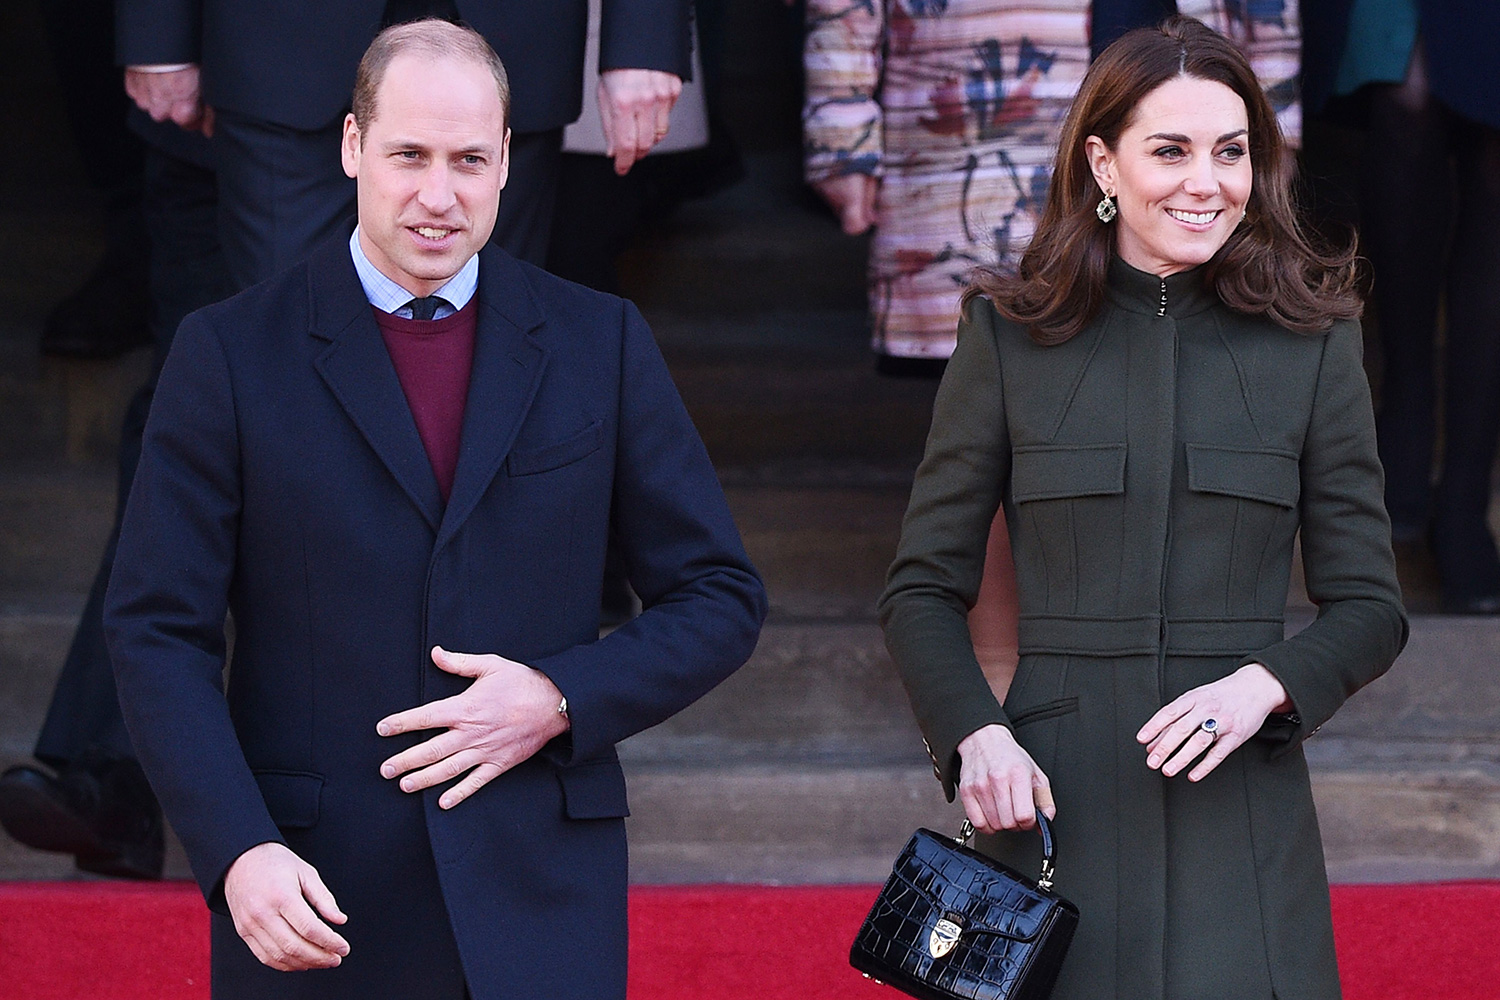 Britain's Prince William, Duke of Cambridge, (L) and Britain's Catherine, Duchess of Cambridge (R) leave after visiting City Hall in Centenary Square, Bradford on January 15, 2020, to meet young people and hear about their life in Bradford